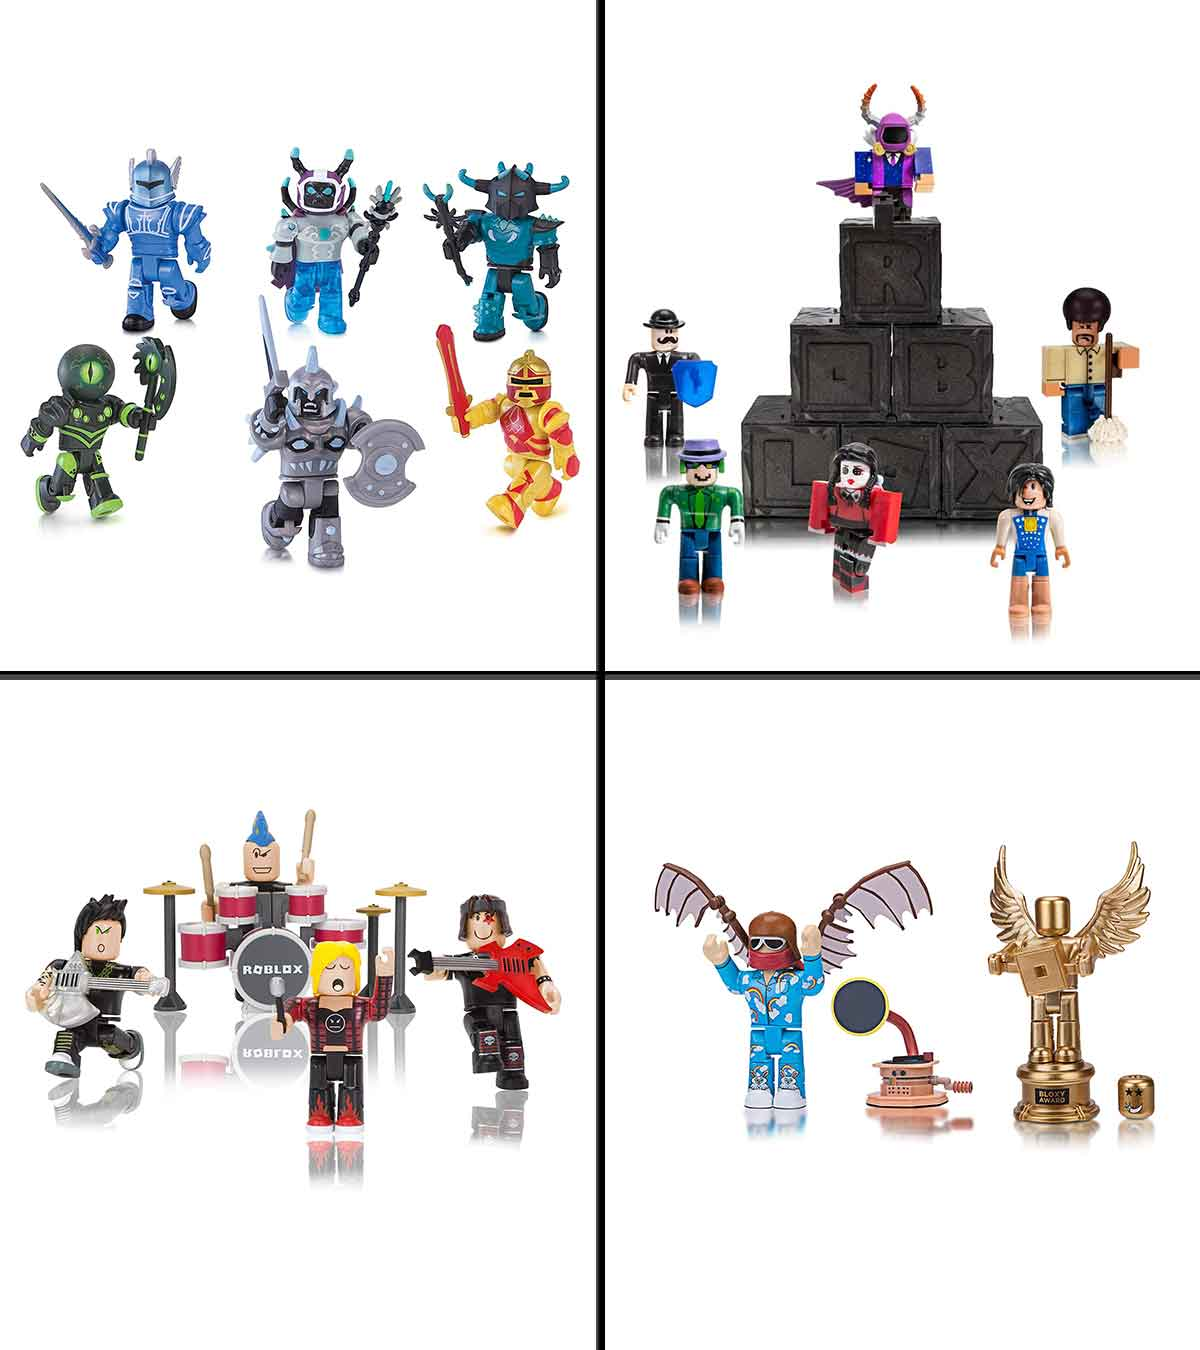 10 Best Roblox Toys Images Toys Cool Things To Buy Play 15 Best Roblox Toys In 2020